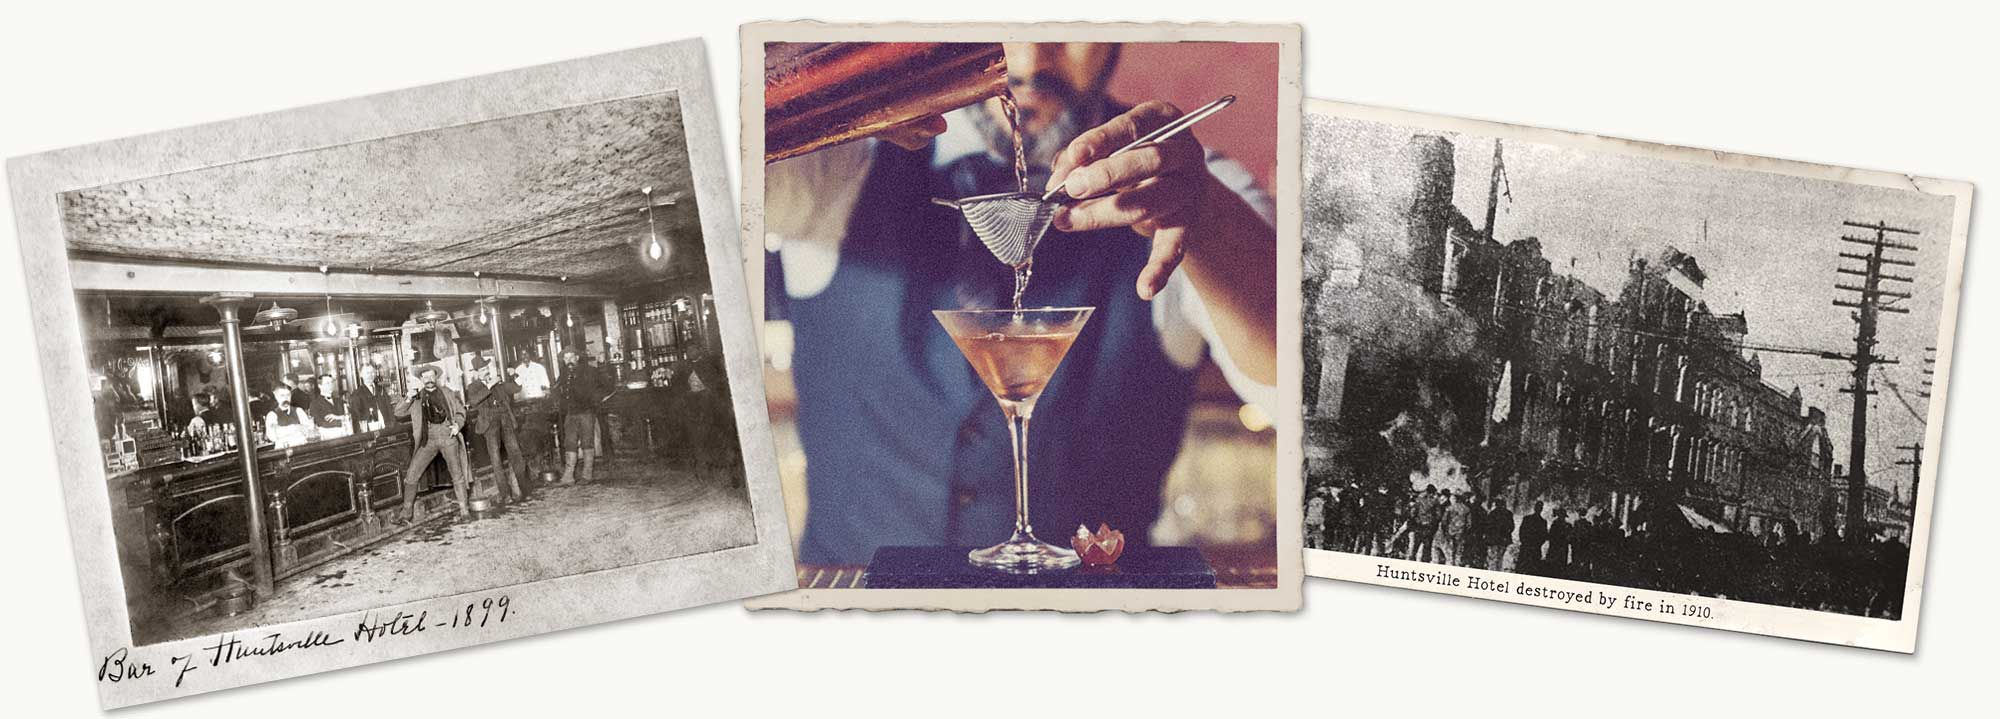 collage of images including a bartender and historical photos